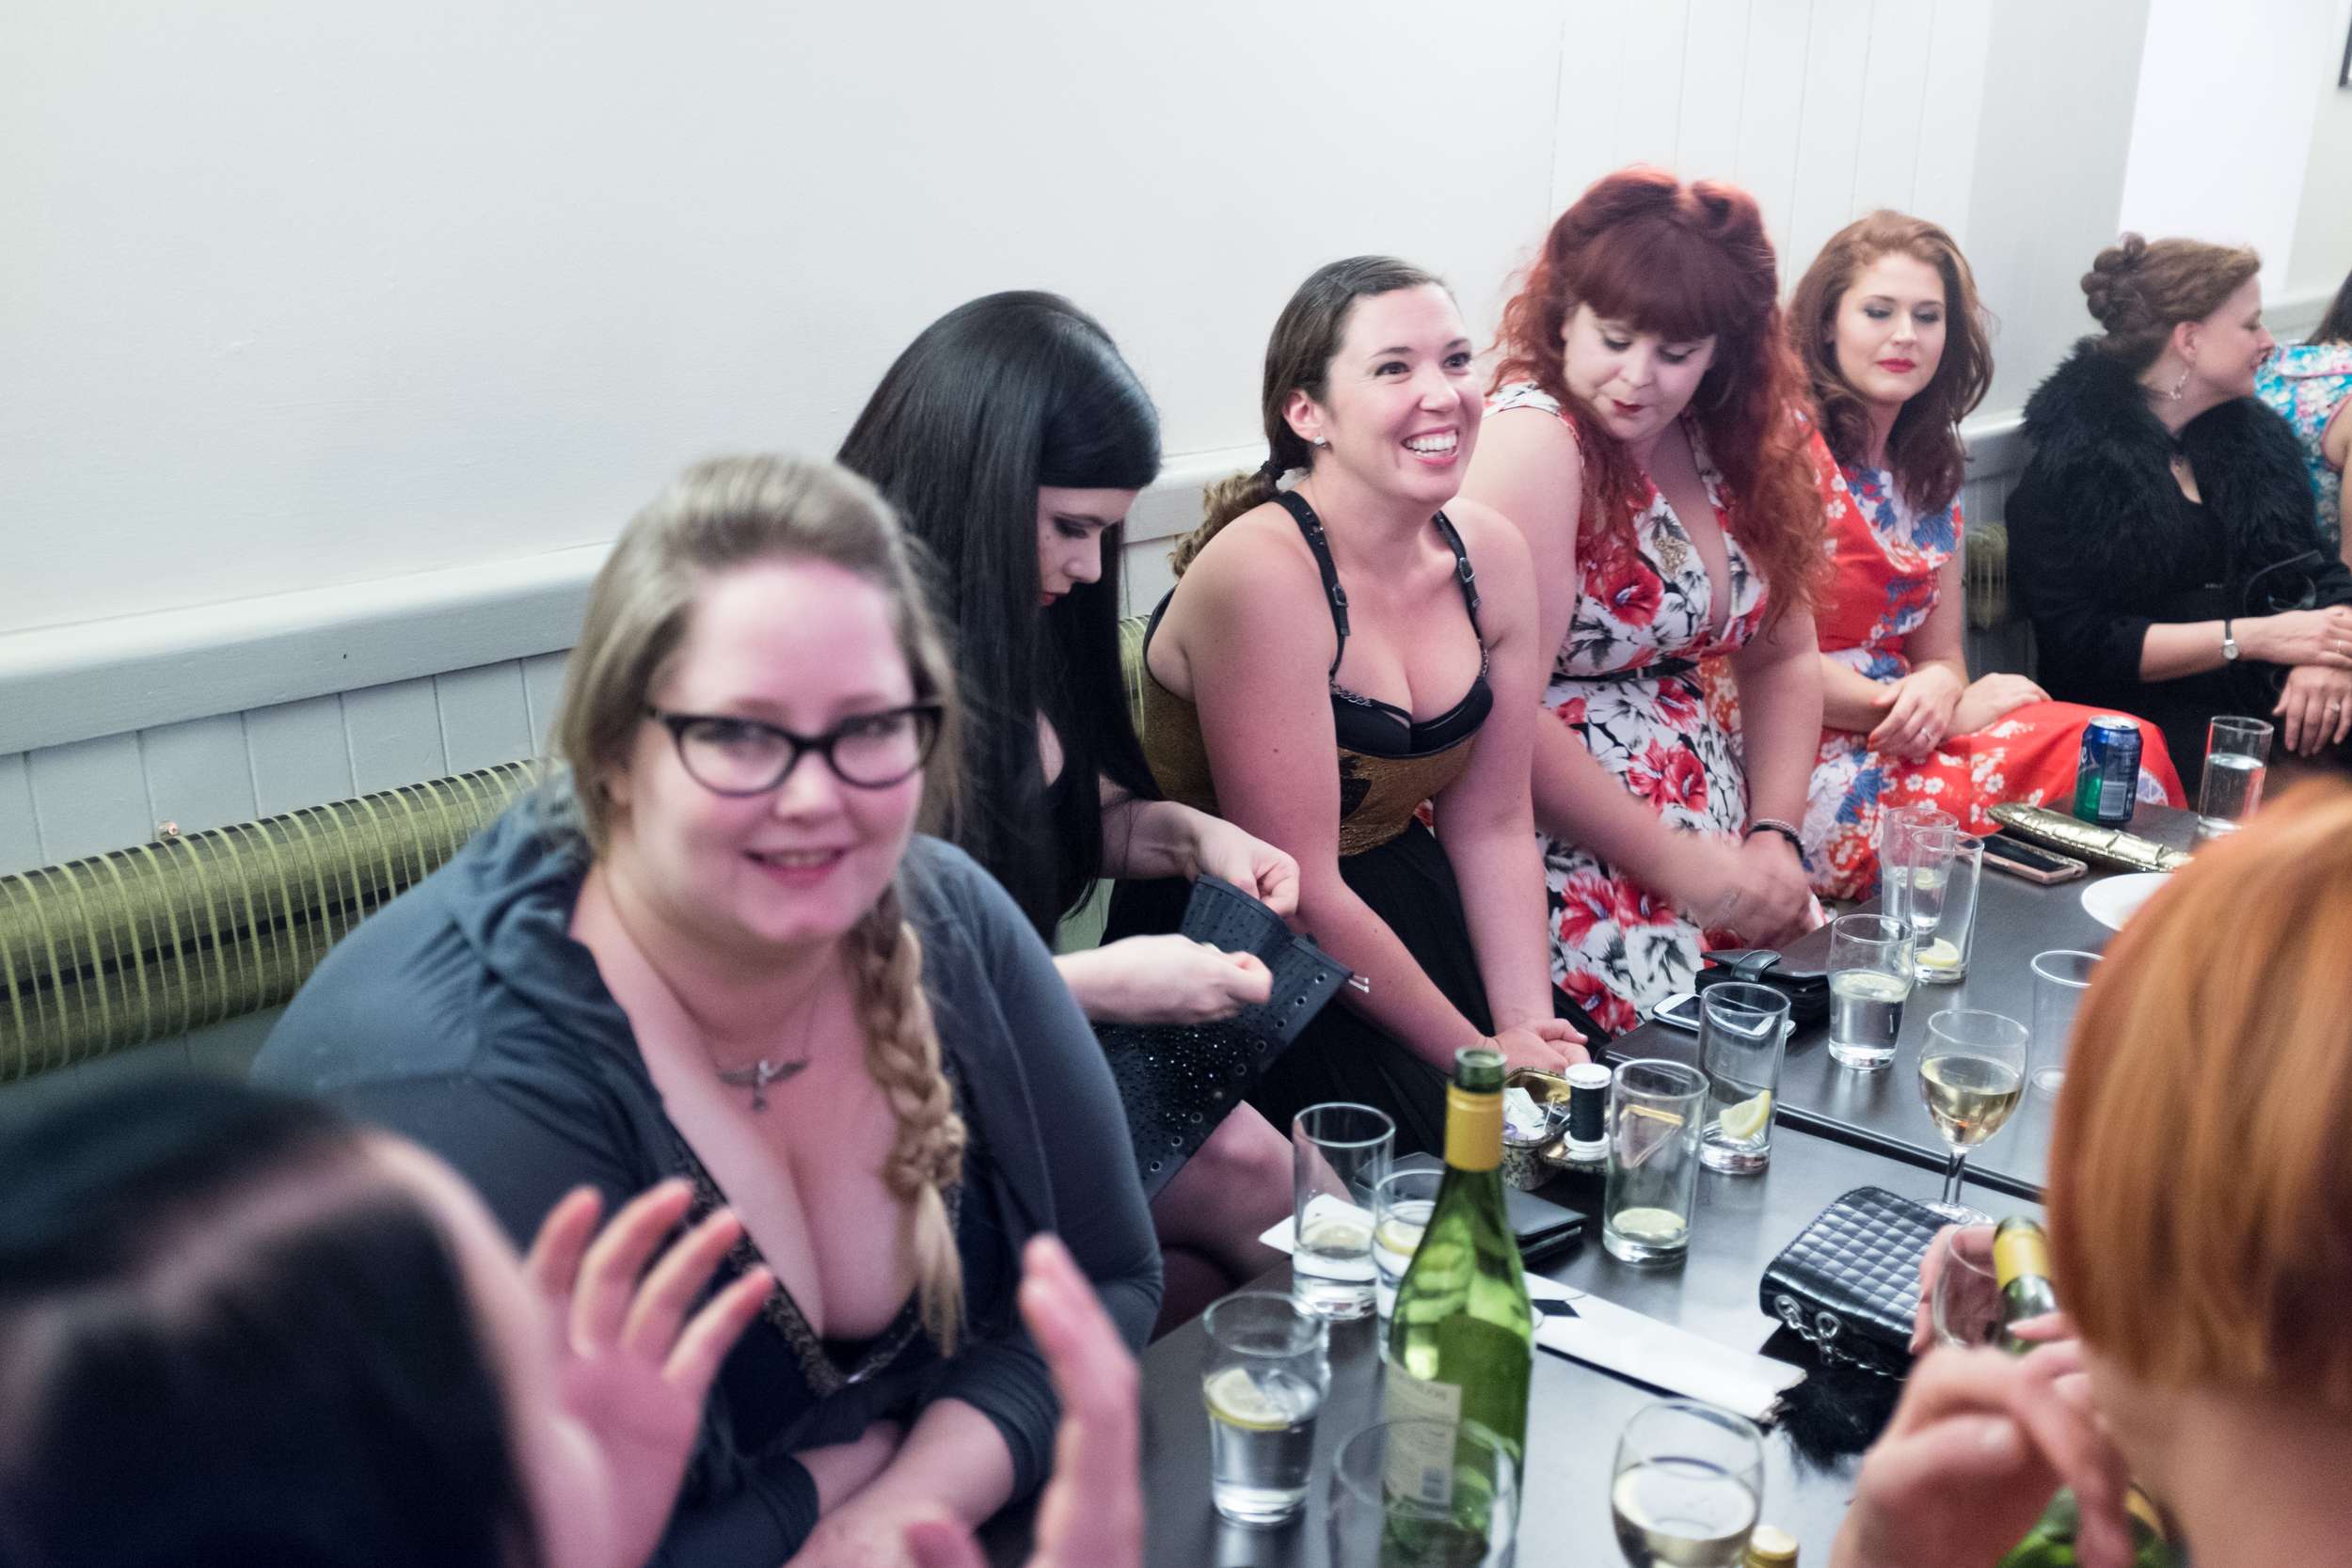 Socialising in the Fourth Quad - the student bar - here's Jenni of Sparklewren, Rosie of Rosie Red, Lowana of Vanyanis, Hannah of Neon Duchess, Liz of Elizabeth Armstrong, Steph of Past Pleasures, Caroline of Corsets by Caroline. picture copyright Chris Murray